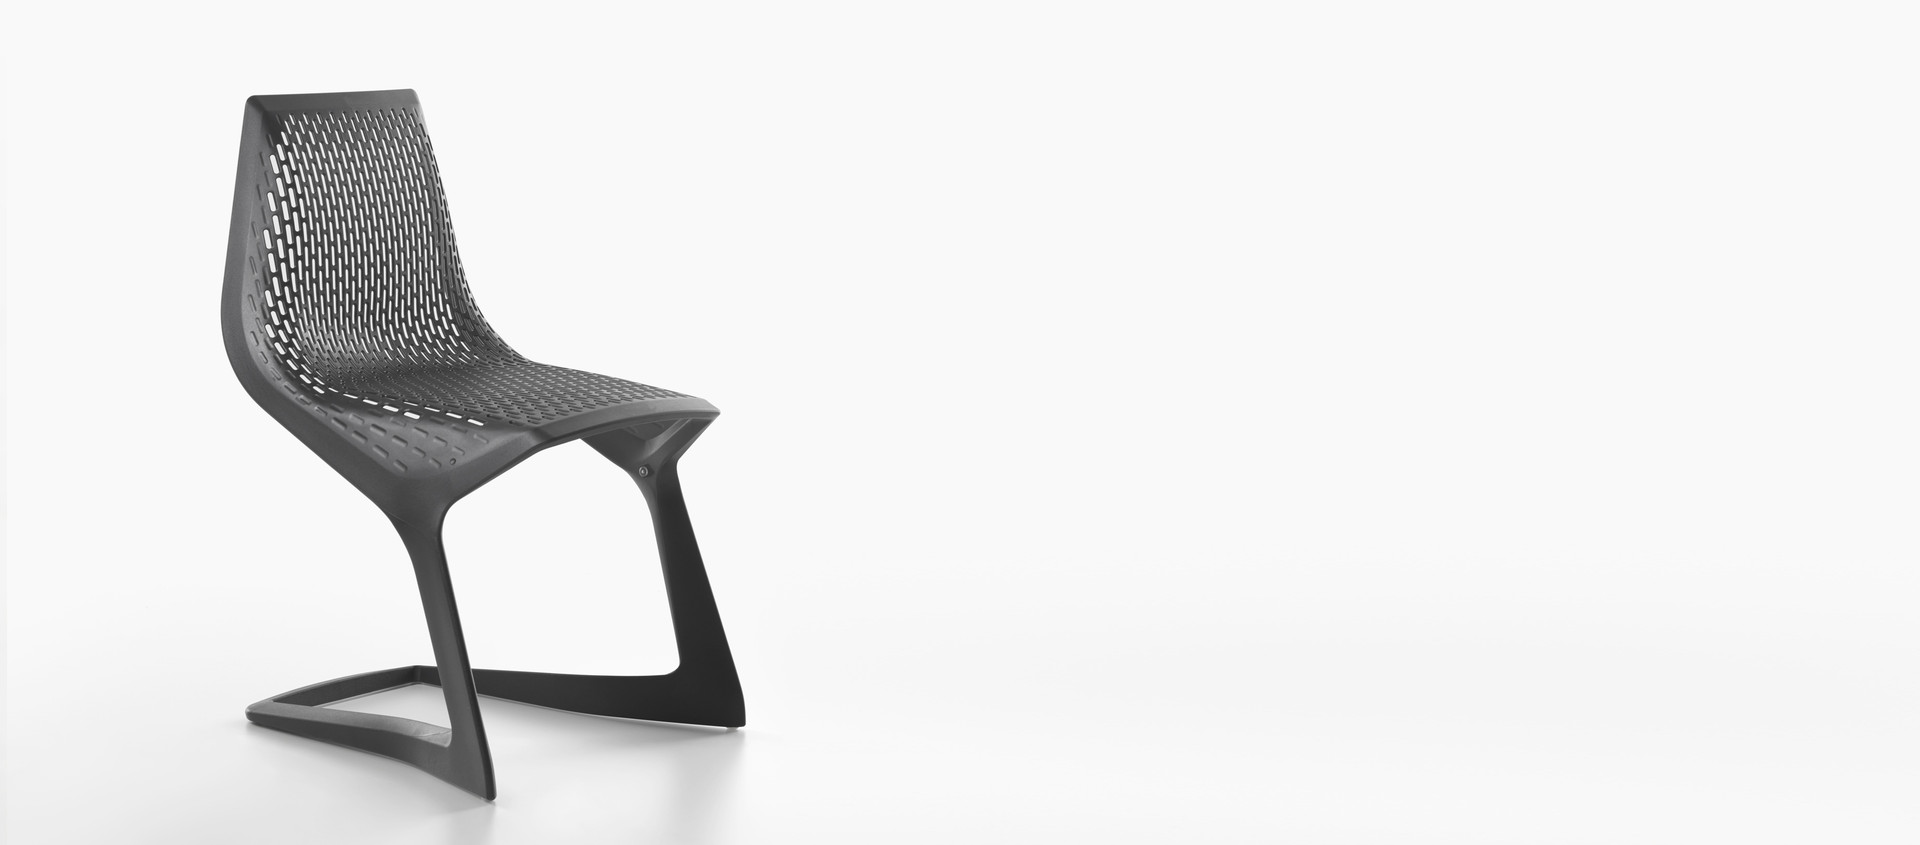 HERO - PLANK MYTO chair